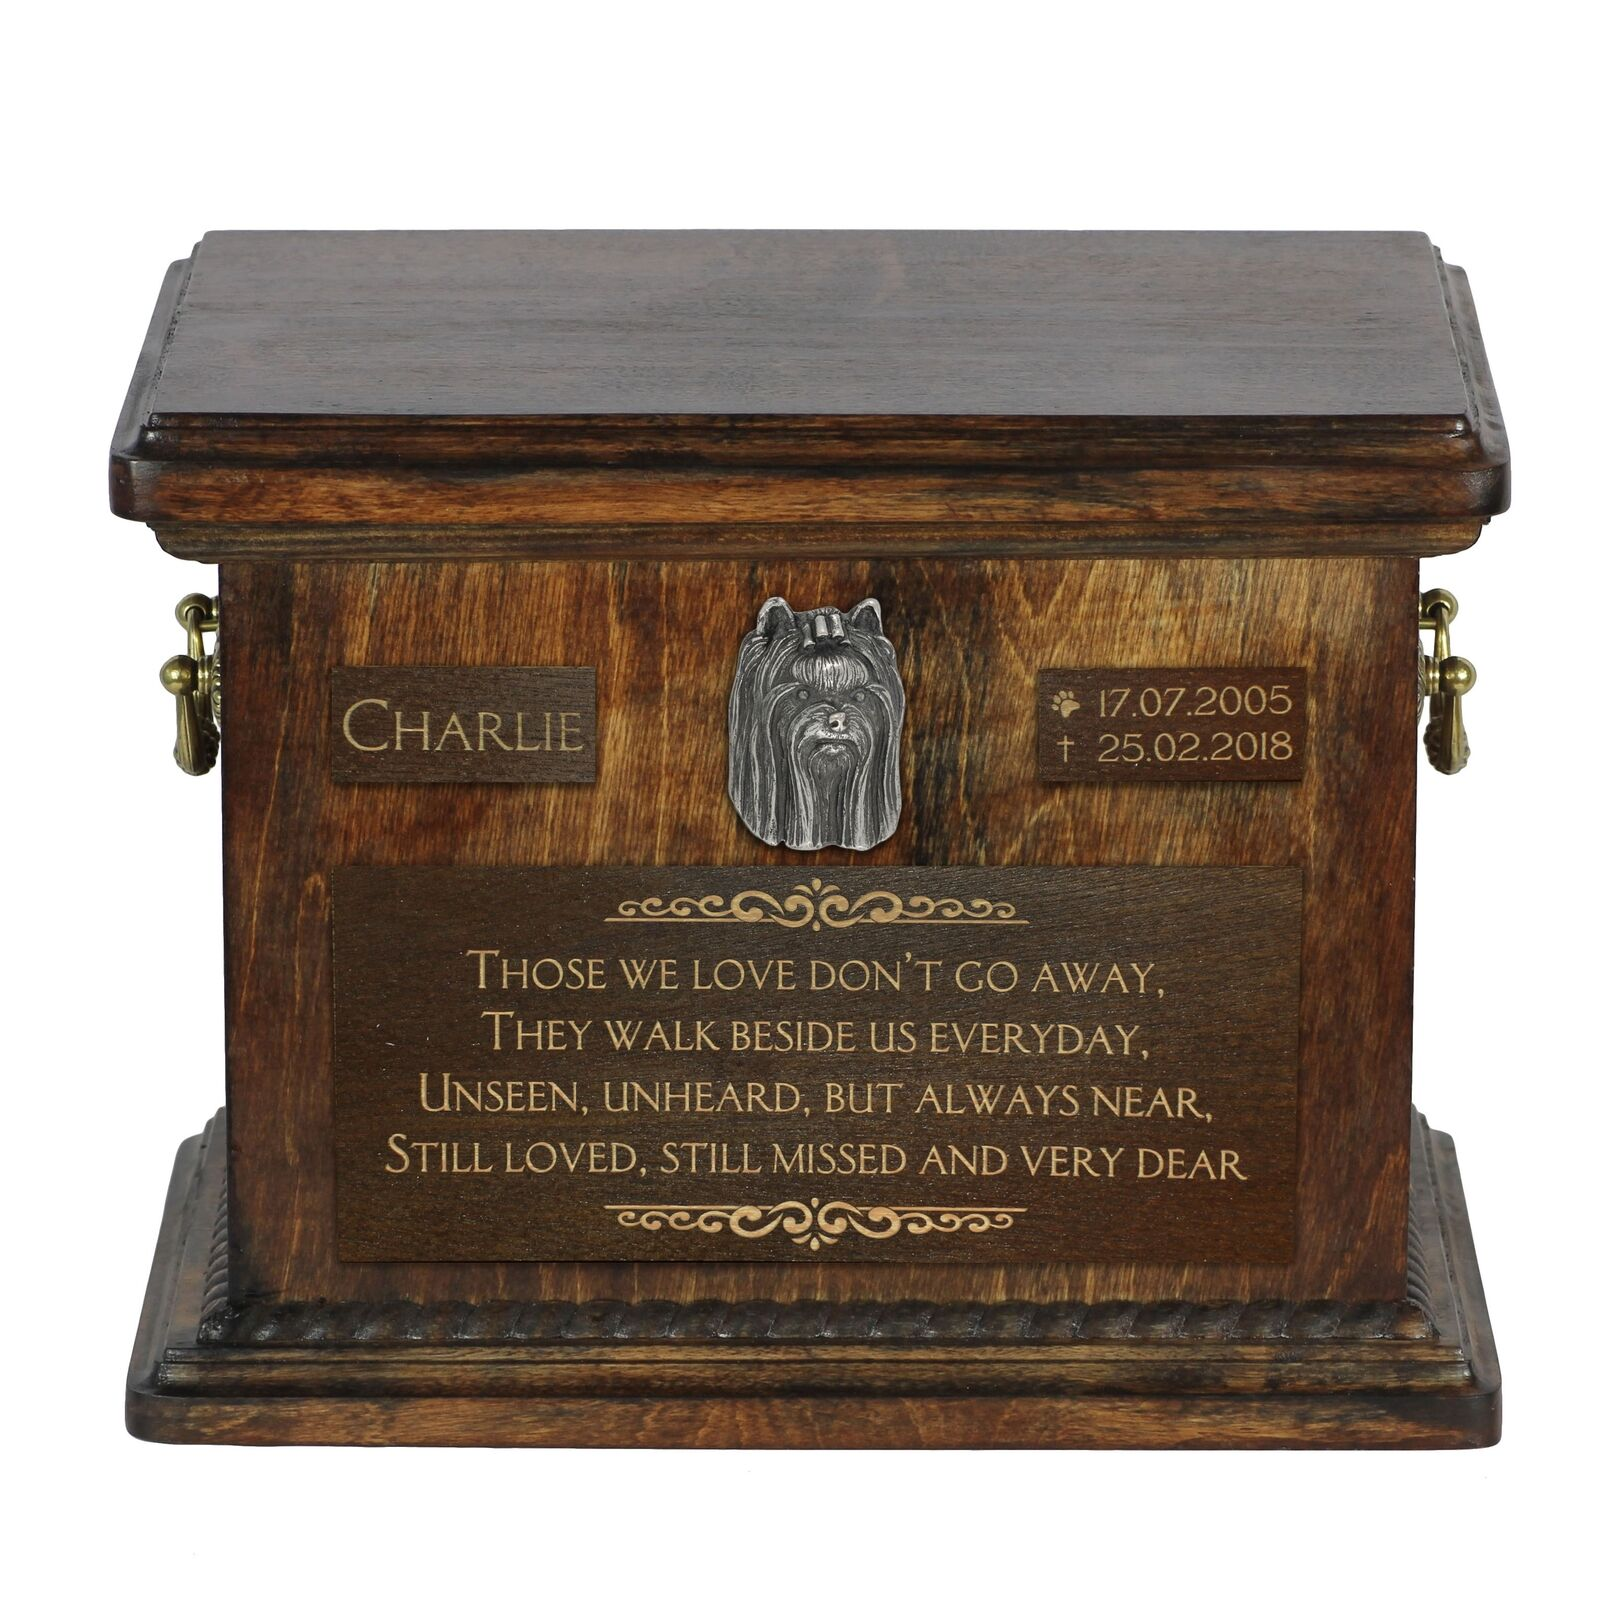 Yorkshire Terrier (2) - Urn for dog's ashes with image of a dog, Art Dog